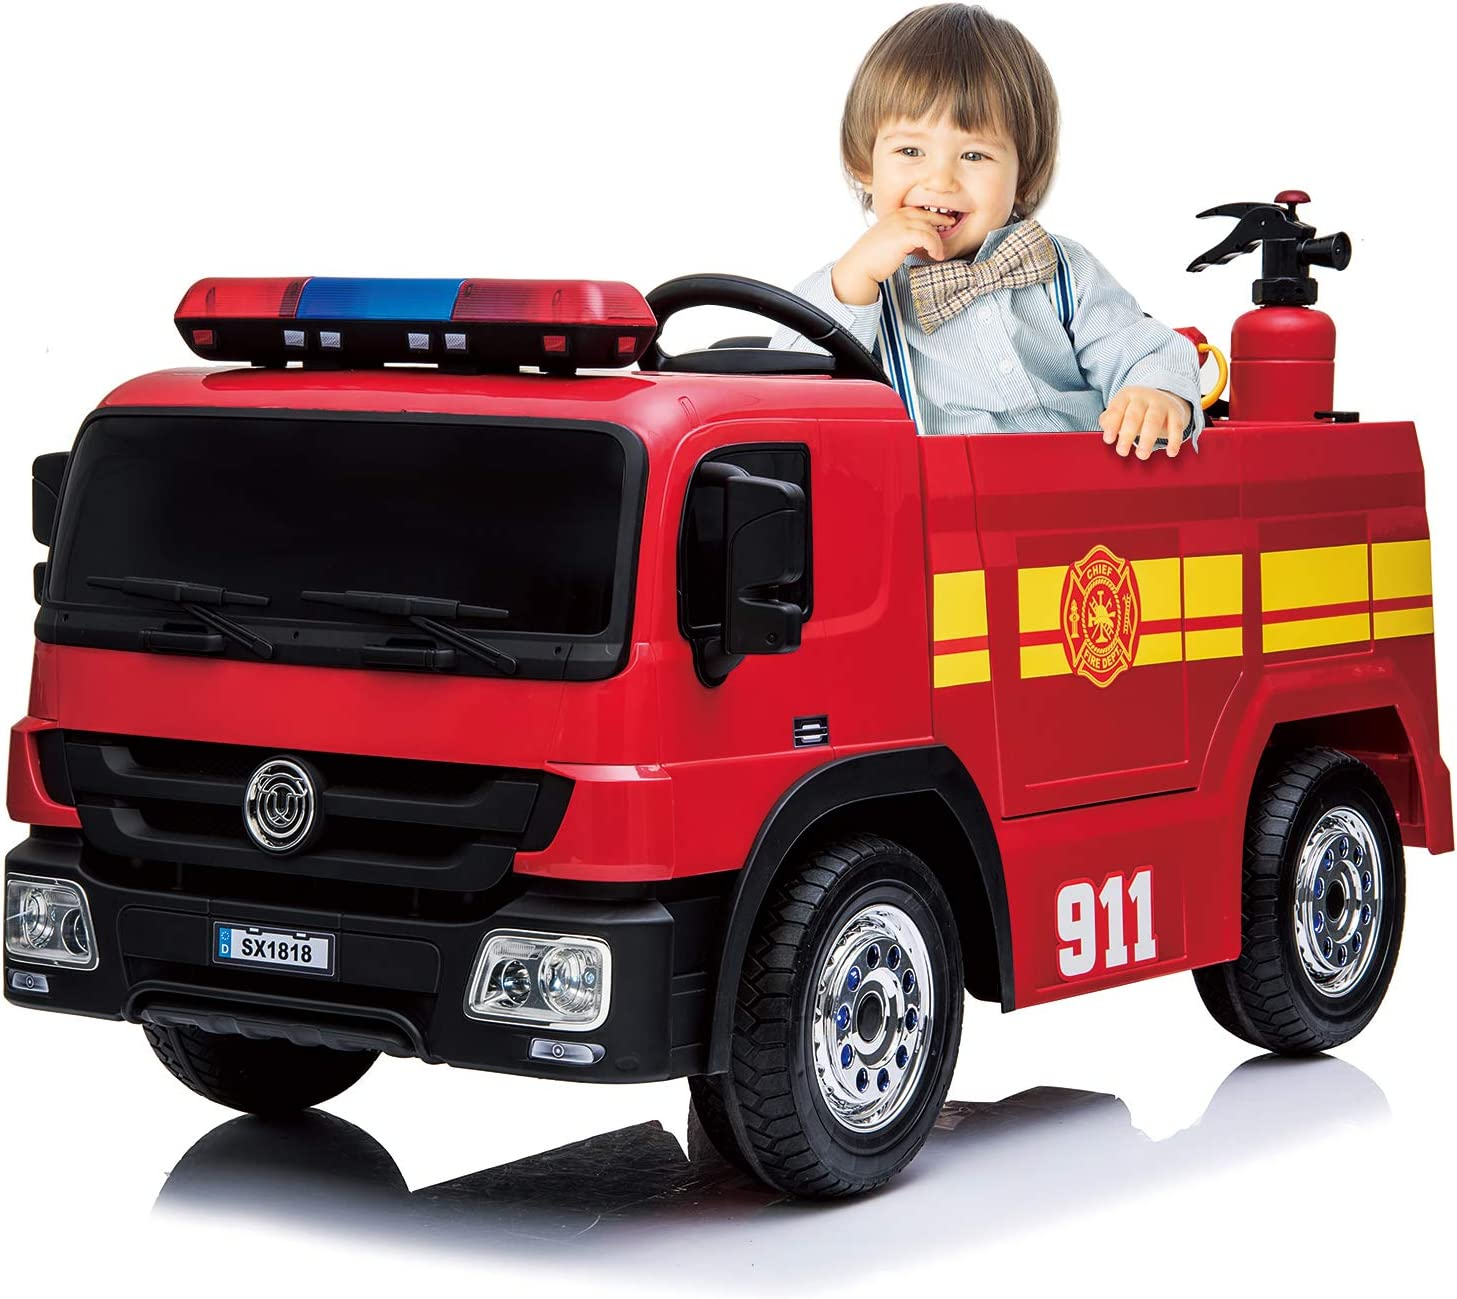 kidsclub Ride On Fire Truck -best Remote Control Electric Car